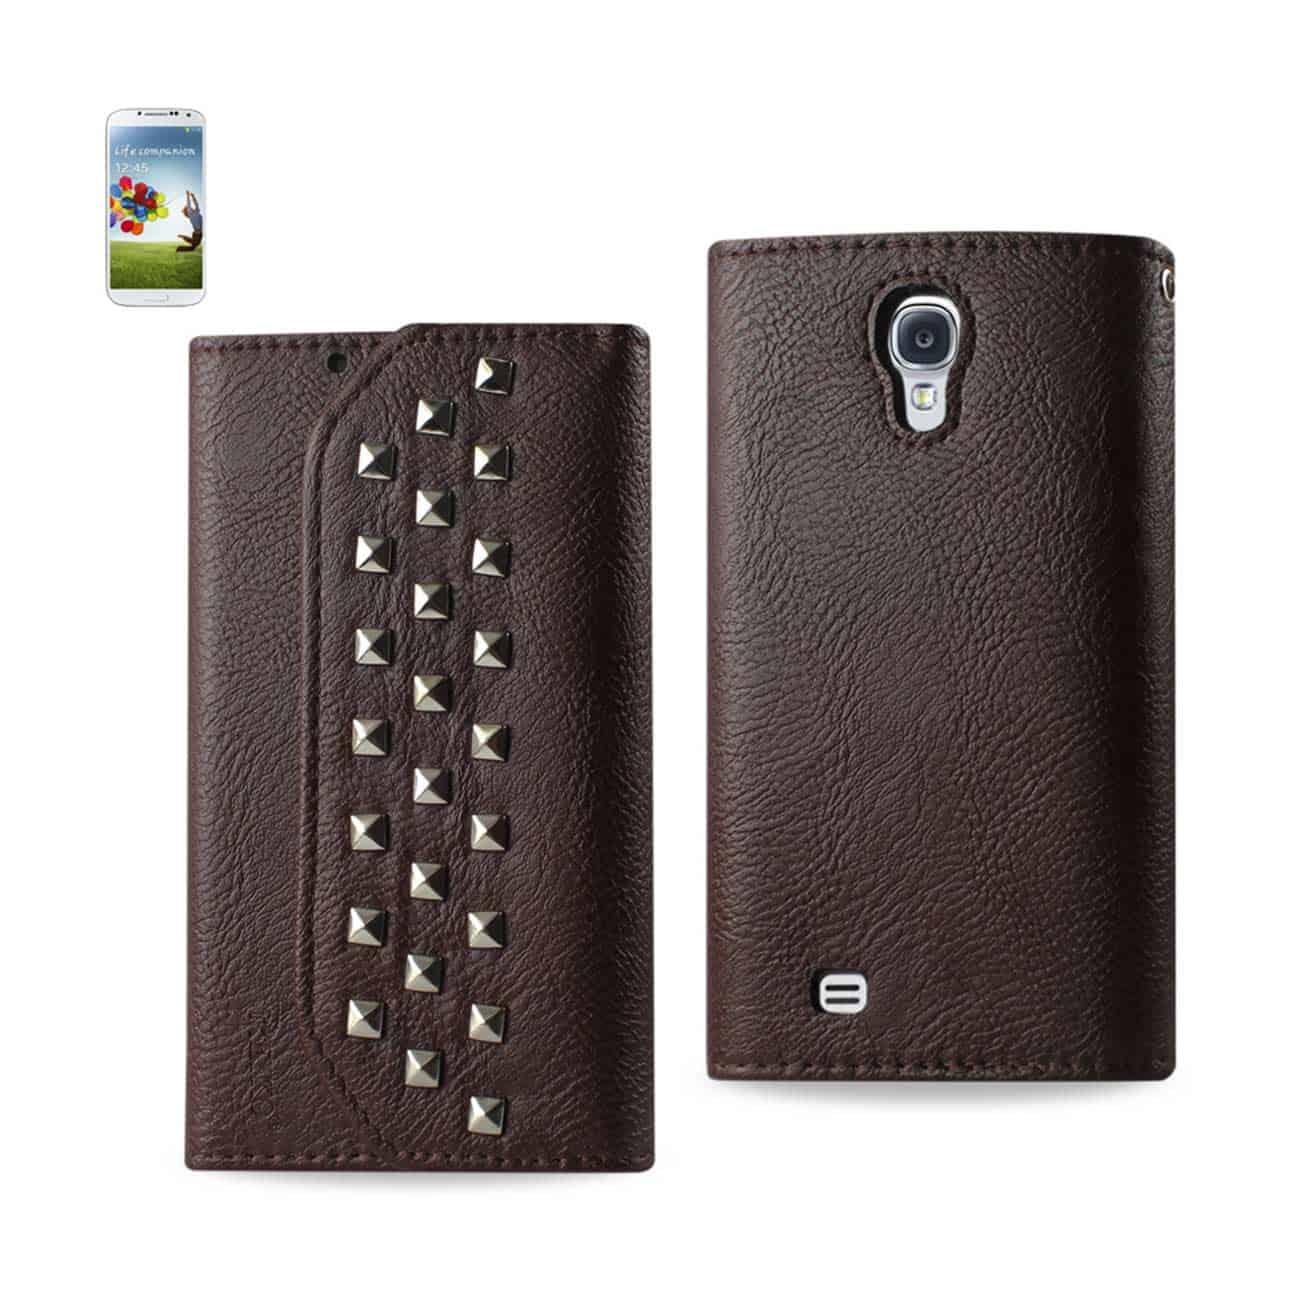 SAMSUNG GALAXY S4 STUDS WALLET CASE IN BROWN